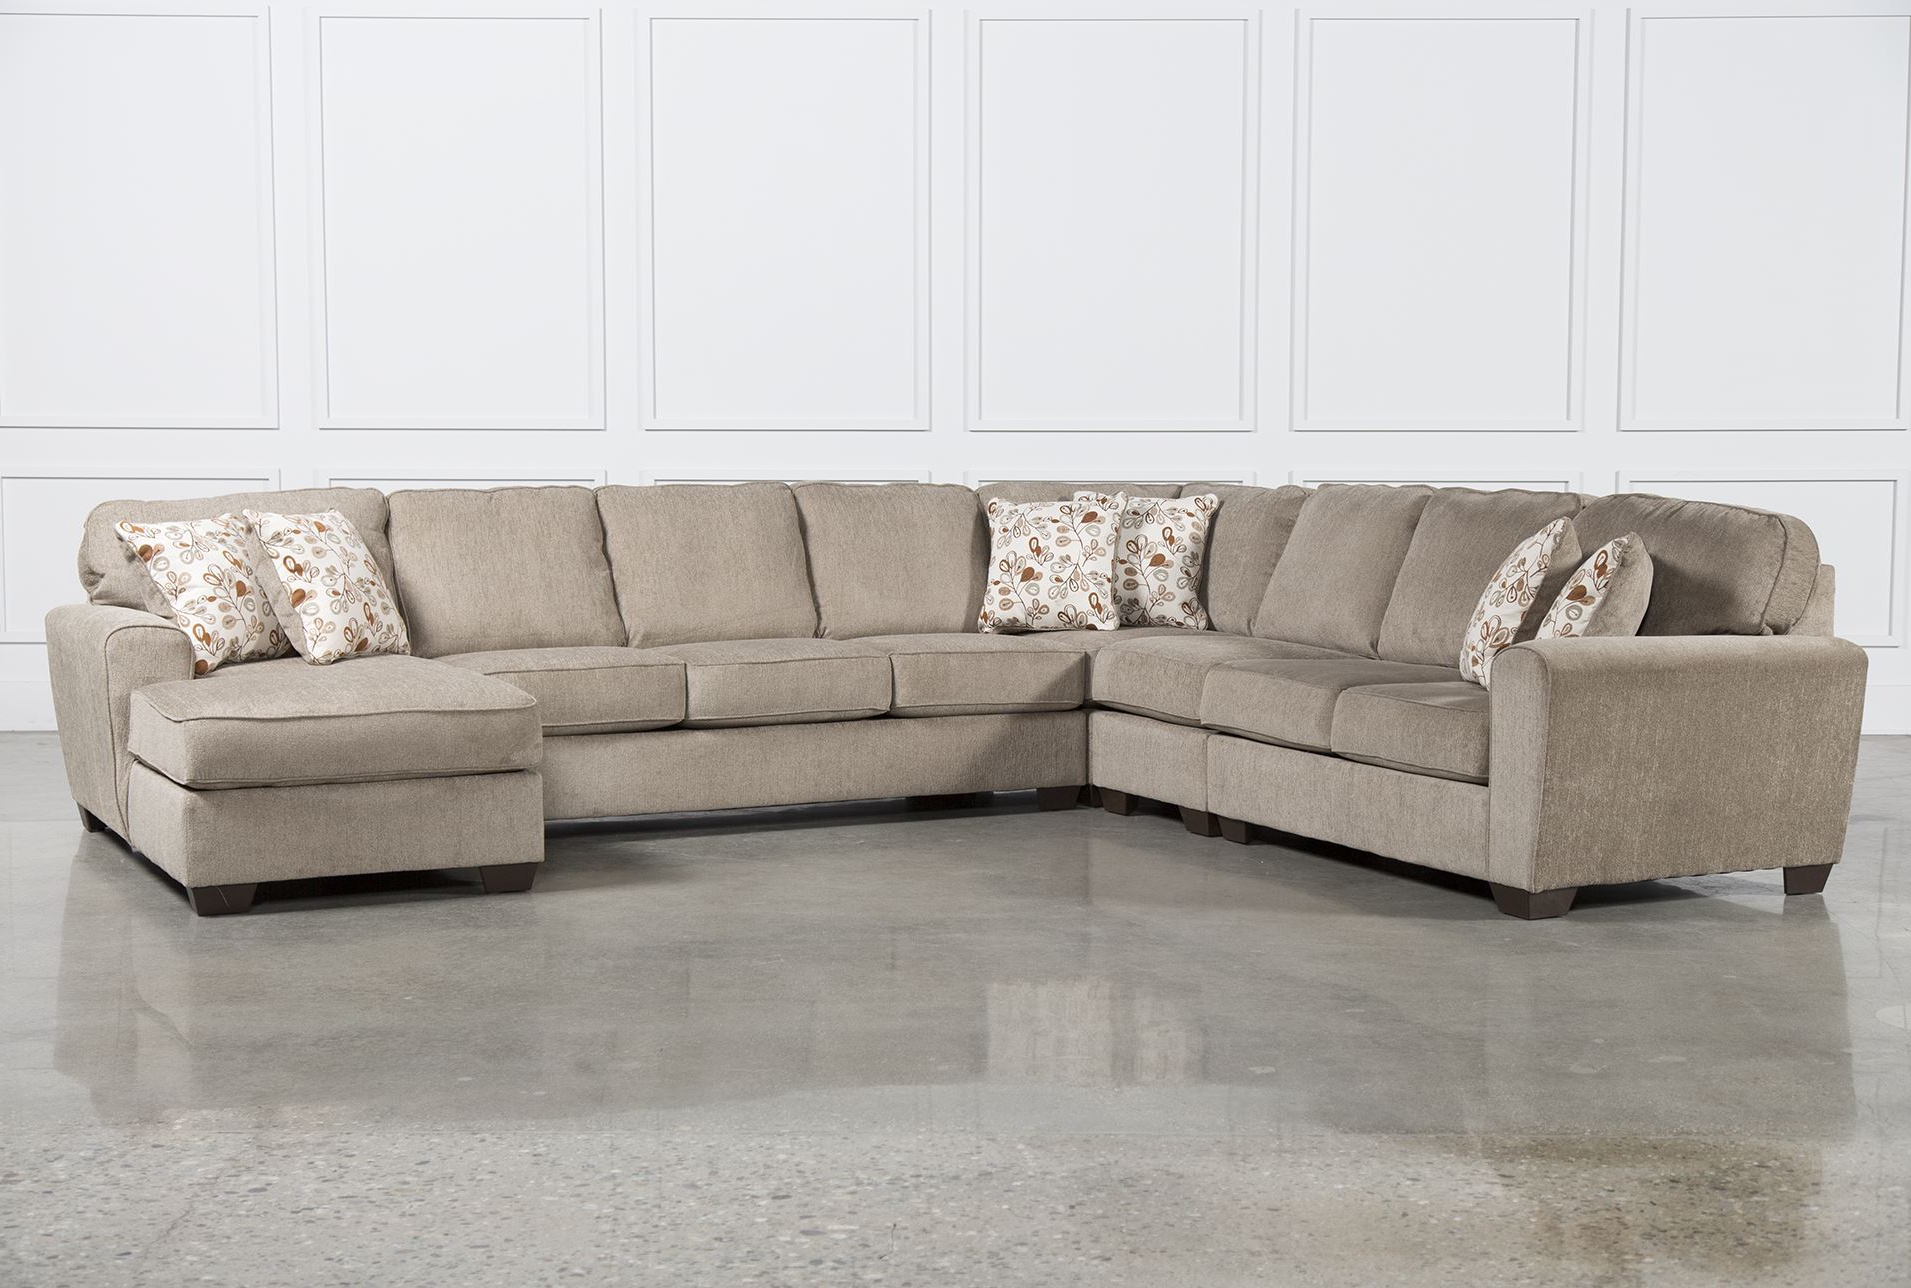 Preferred Best Ideas Of Raf Chaise In Patola Park 5 Piece Sectional W Raf With Regard To Meyer 3 Piece Sectionals With Raf Chaise (View 11 of 20)